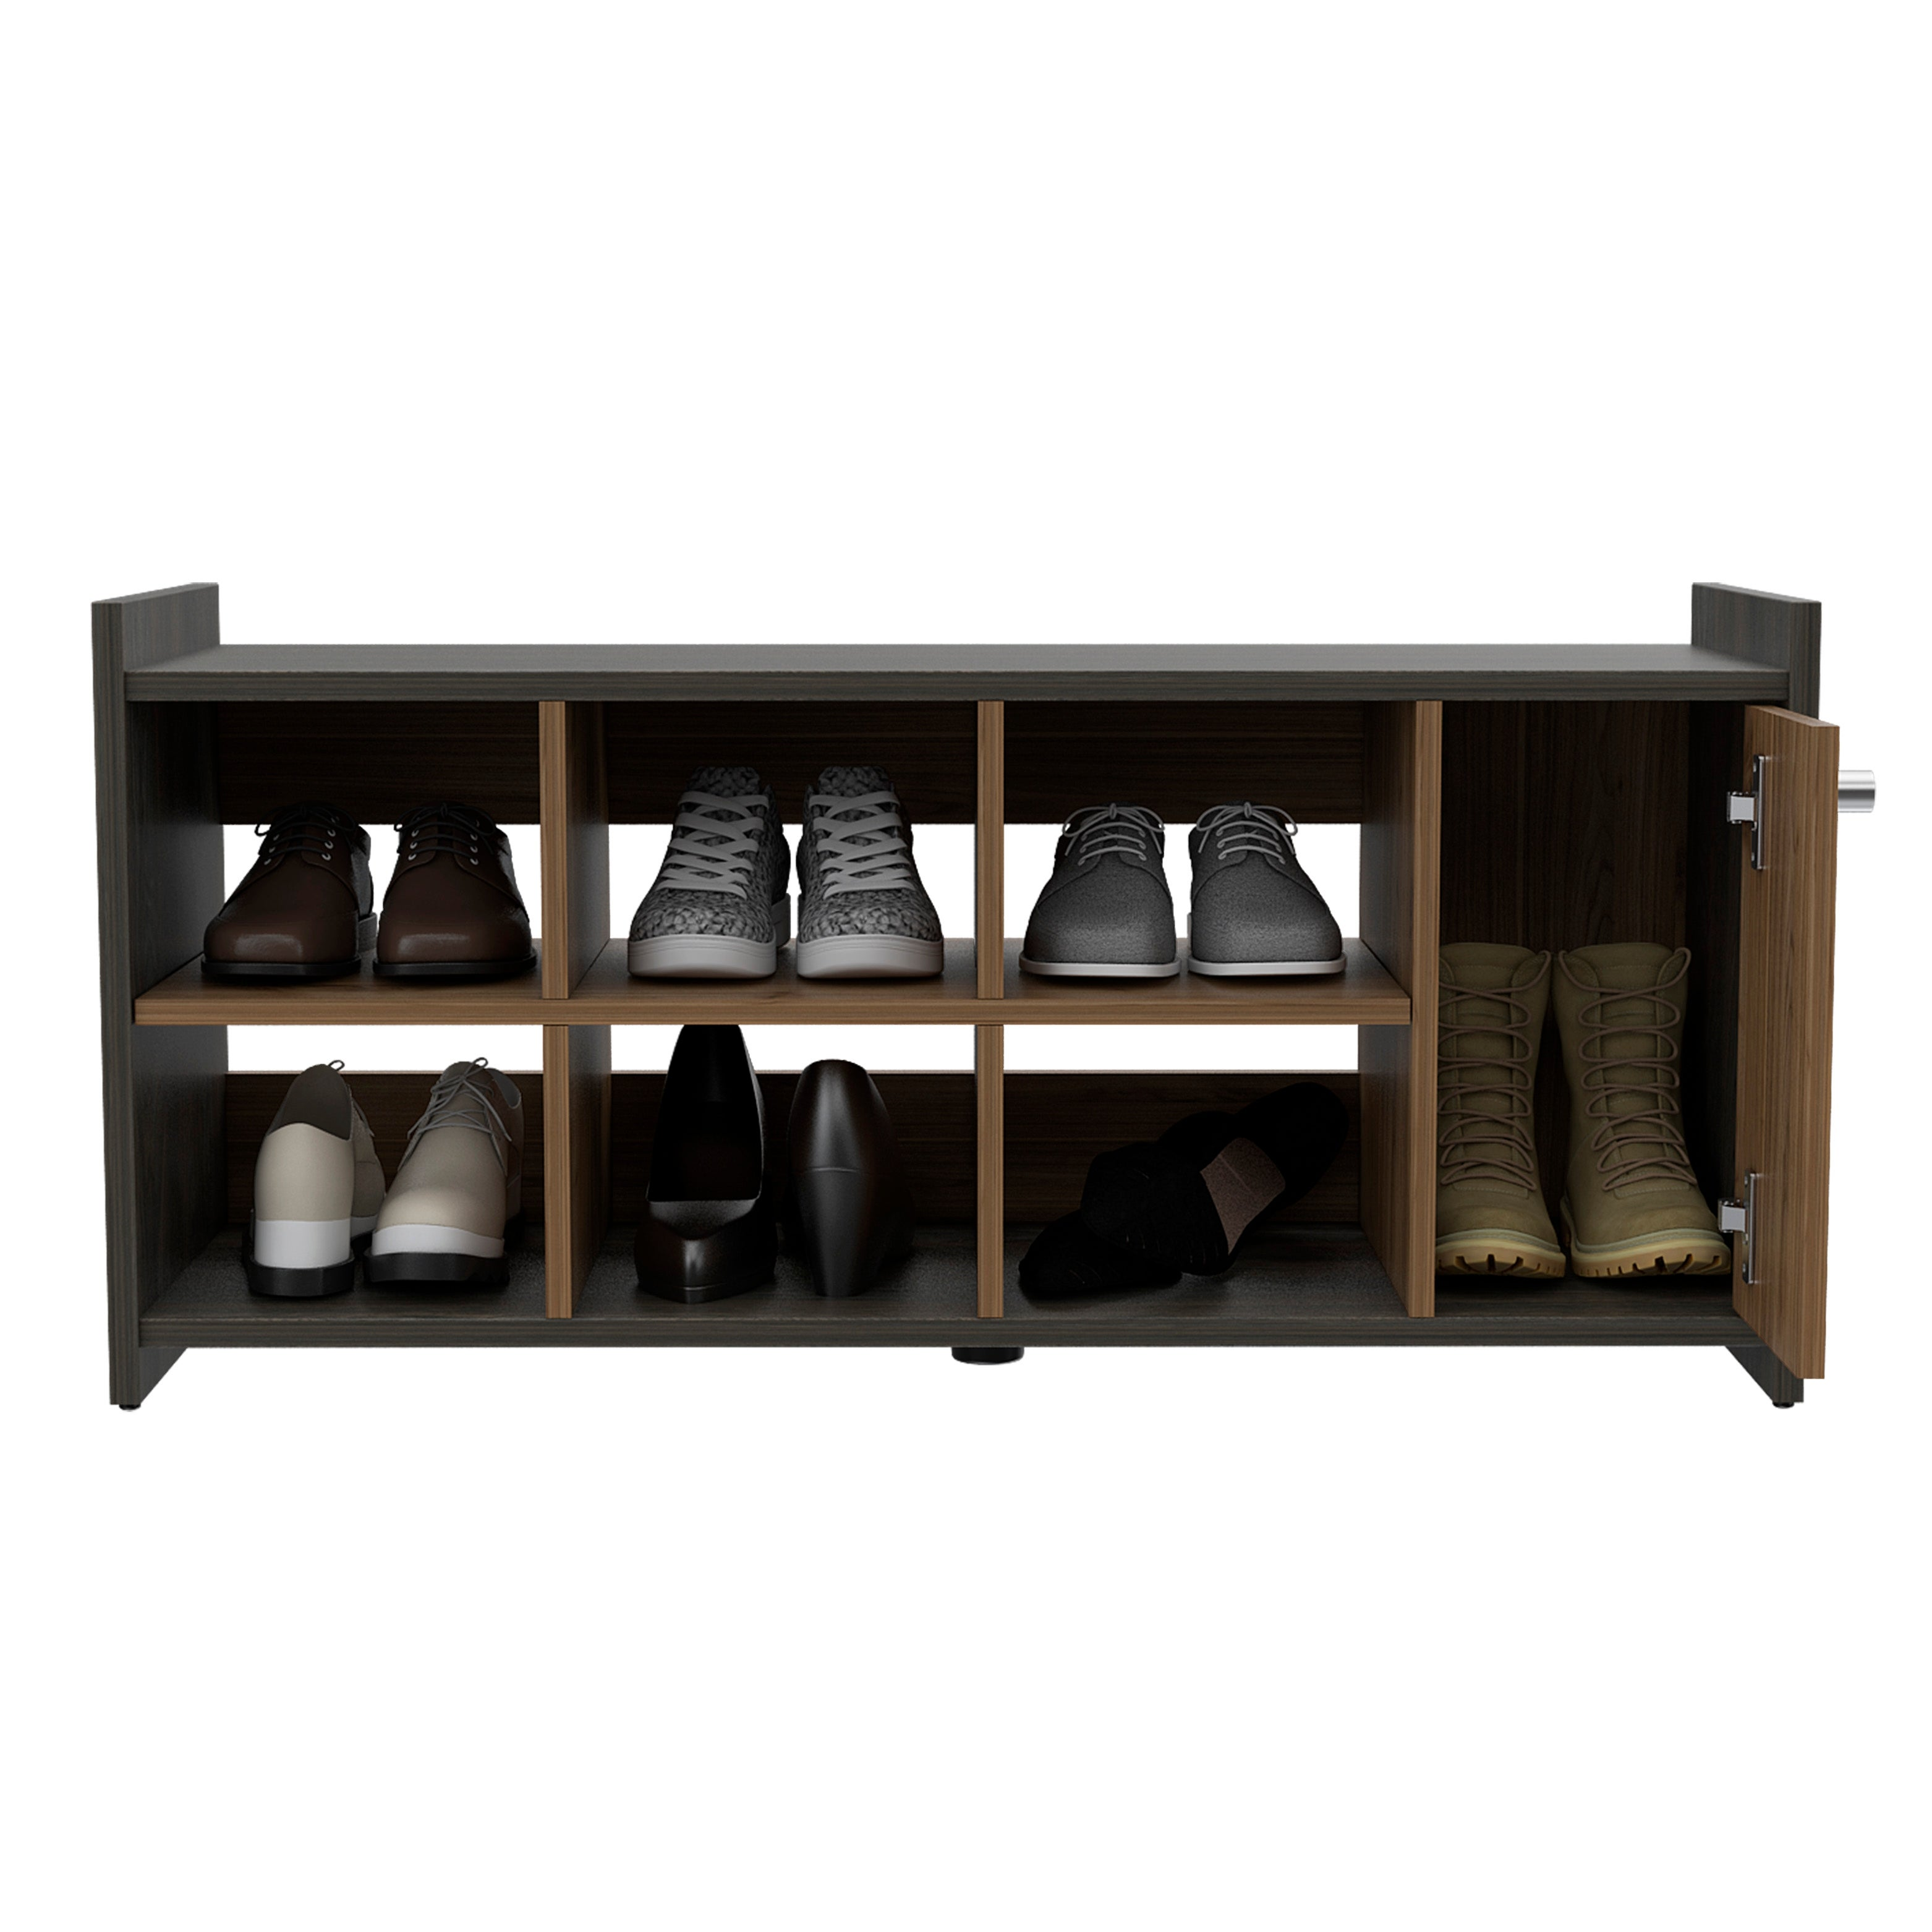 Tuhome 6 Pair Stackable Shoe Rack With Cabinet In Mahogany Espresso Overstock 31959764